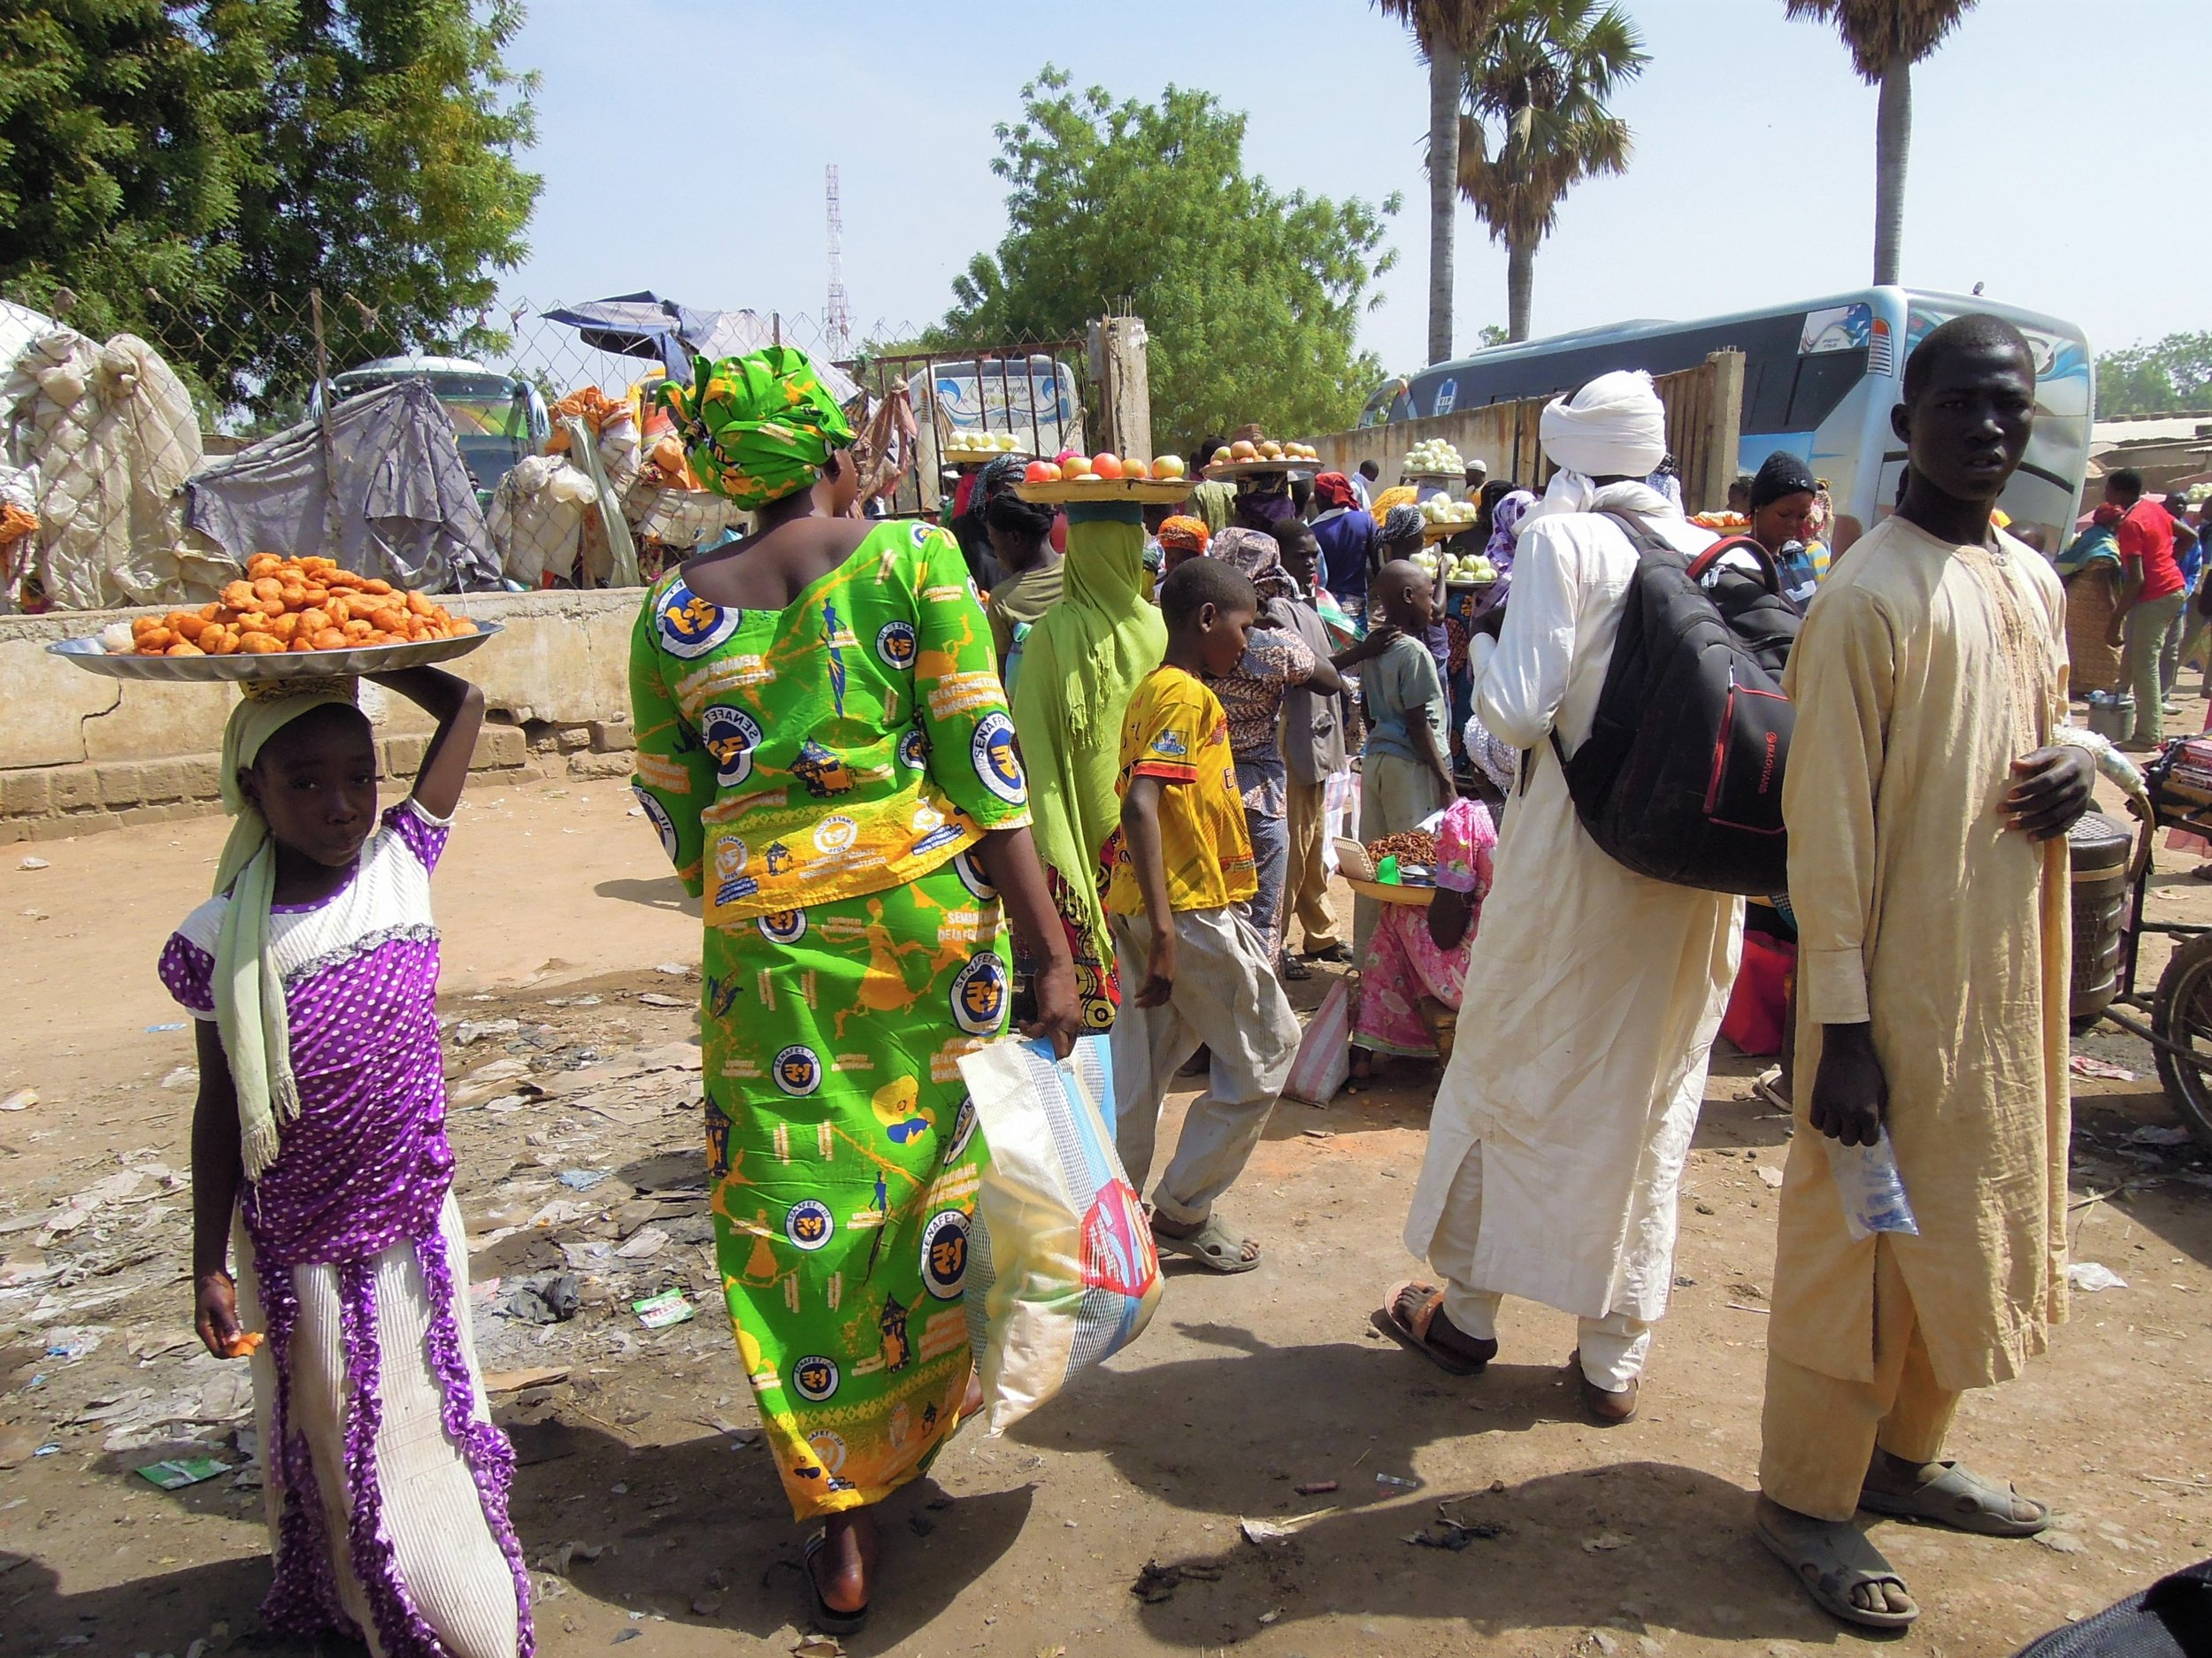 Locals sell food and other goods at a busy bus stop in Bongol, Chad, a small city on the drive from N'Djamena (Chad's capital city) to Kelo.